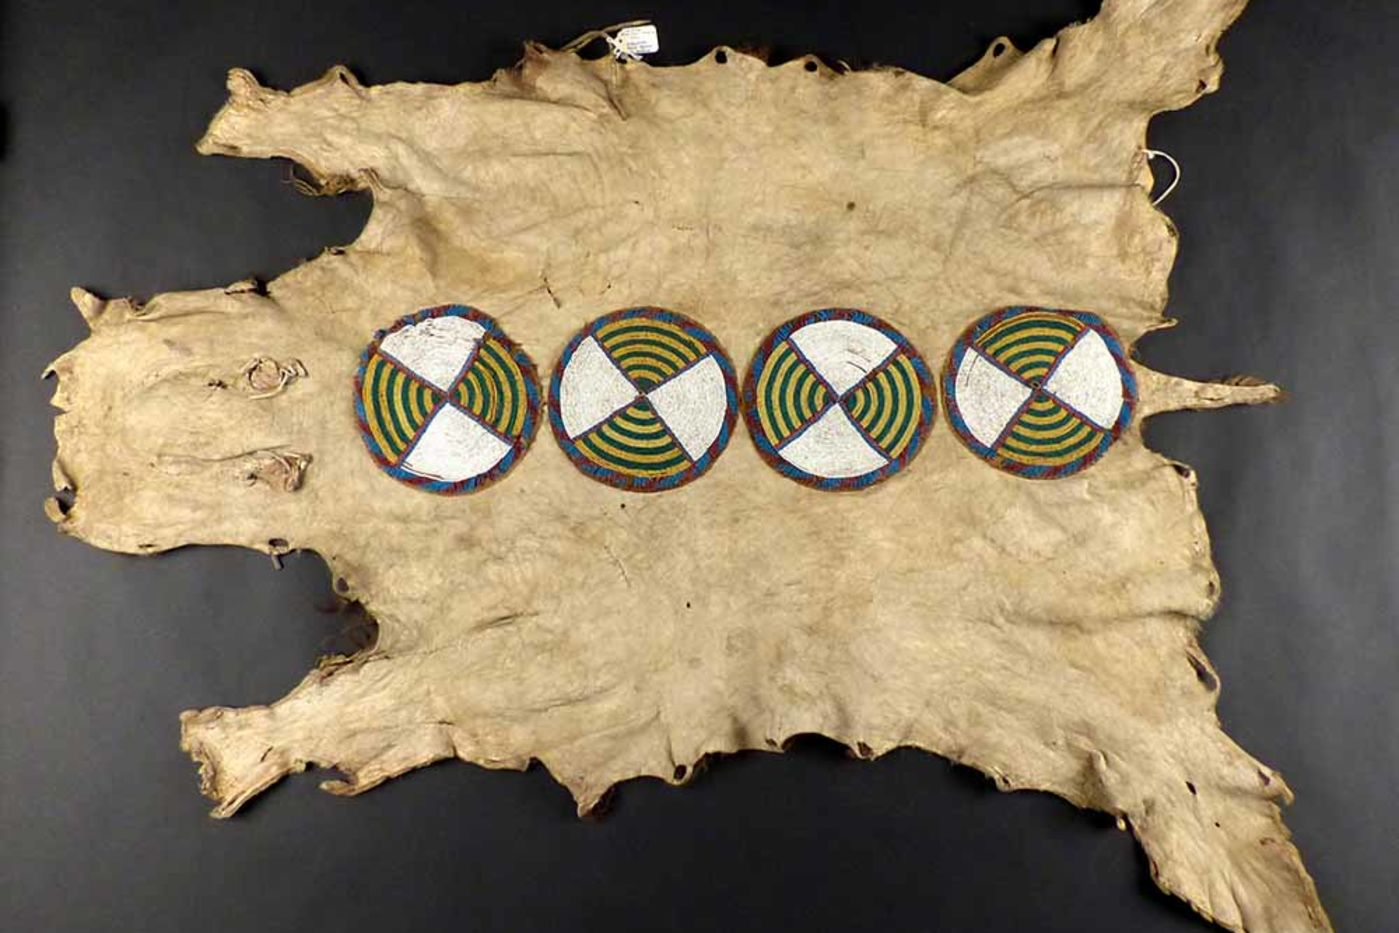 An animal hide painted with four circles containing a striped design